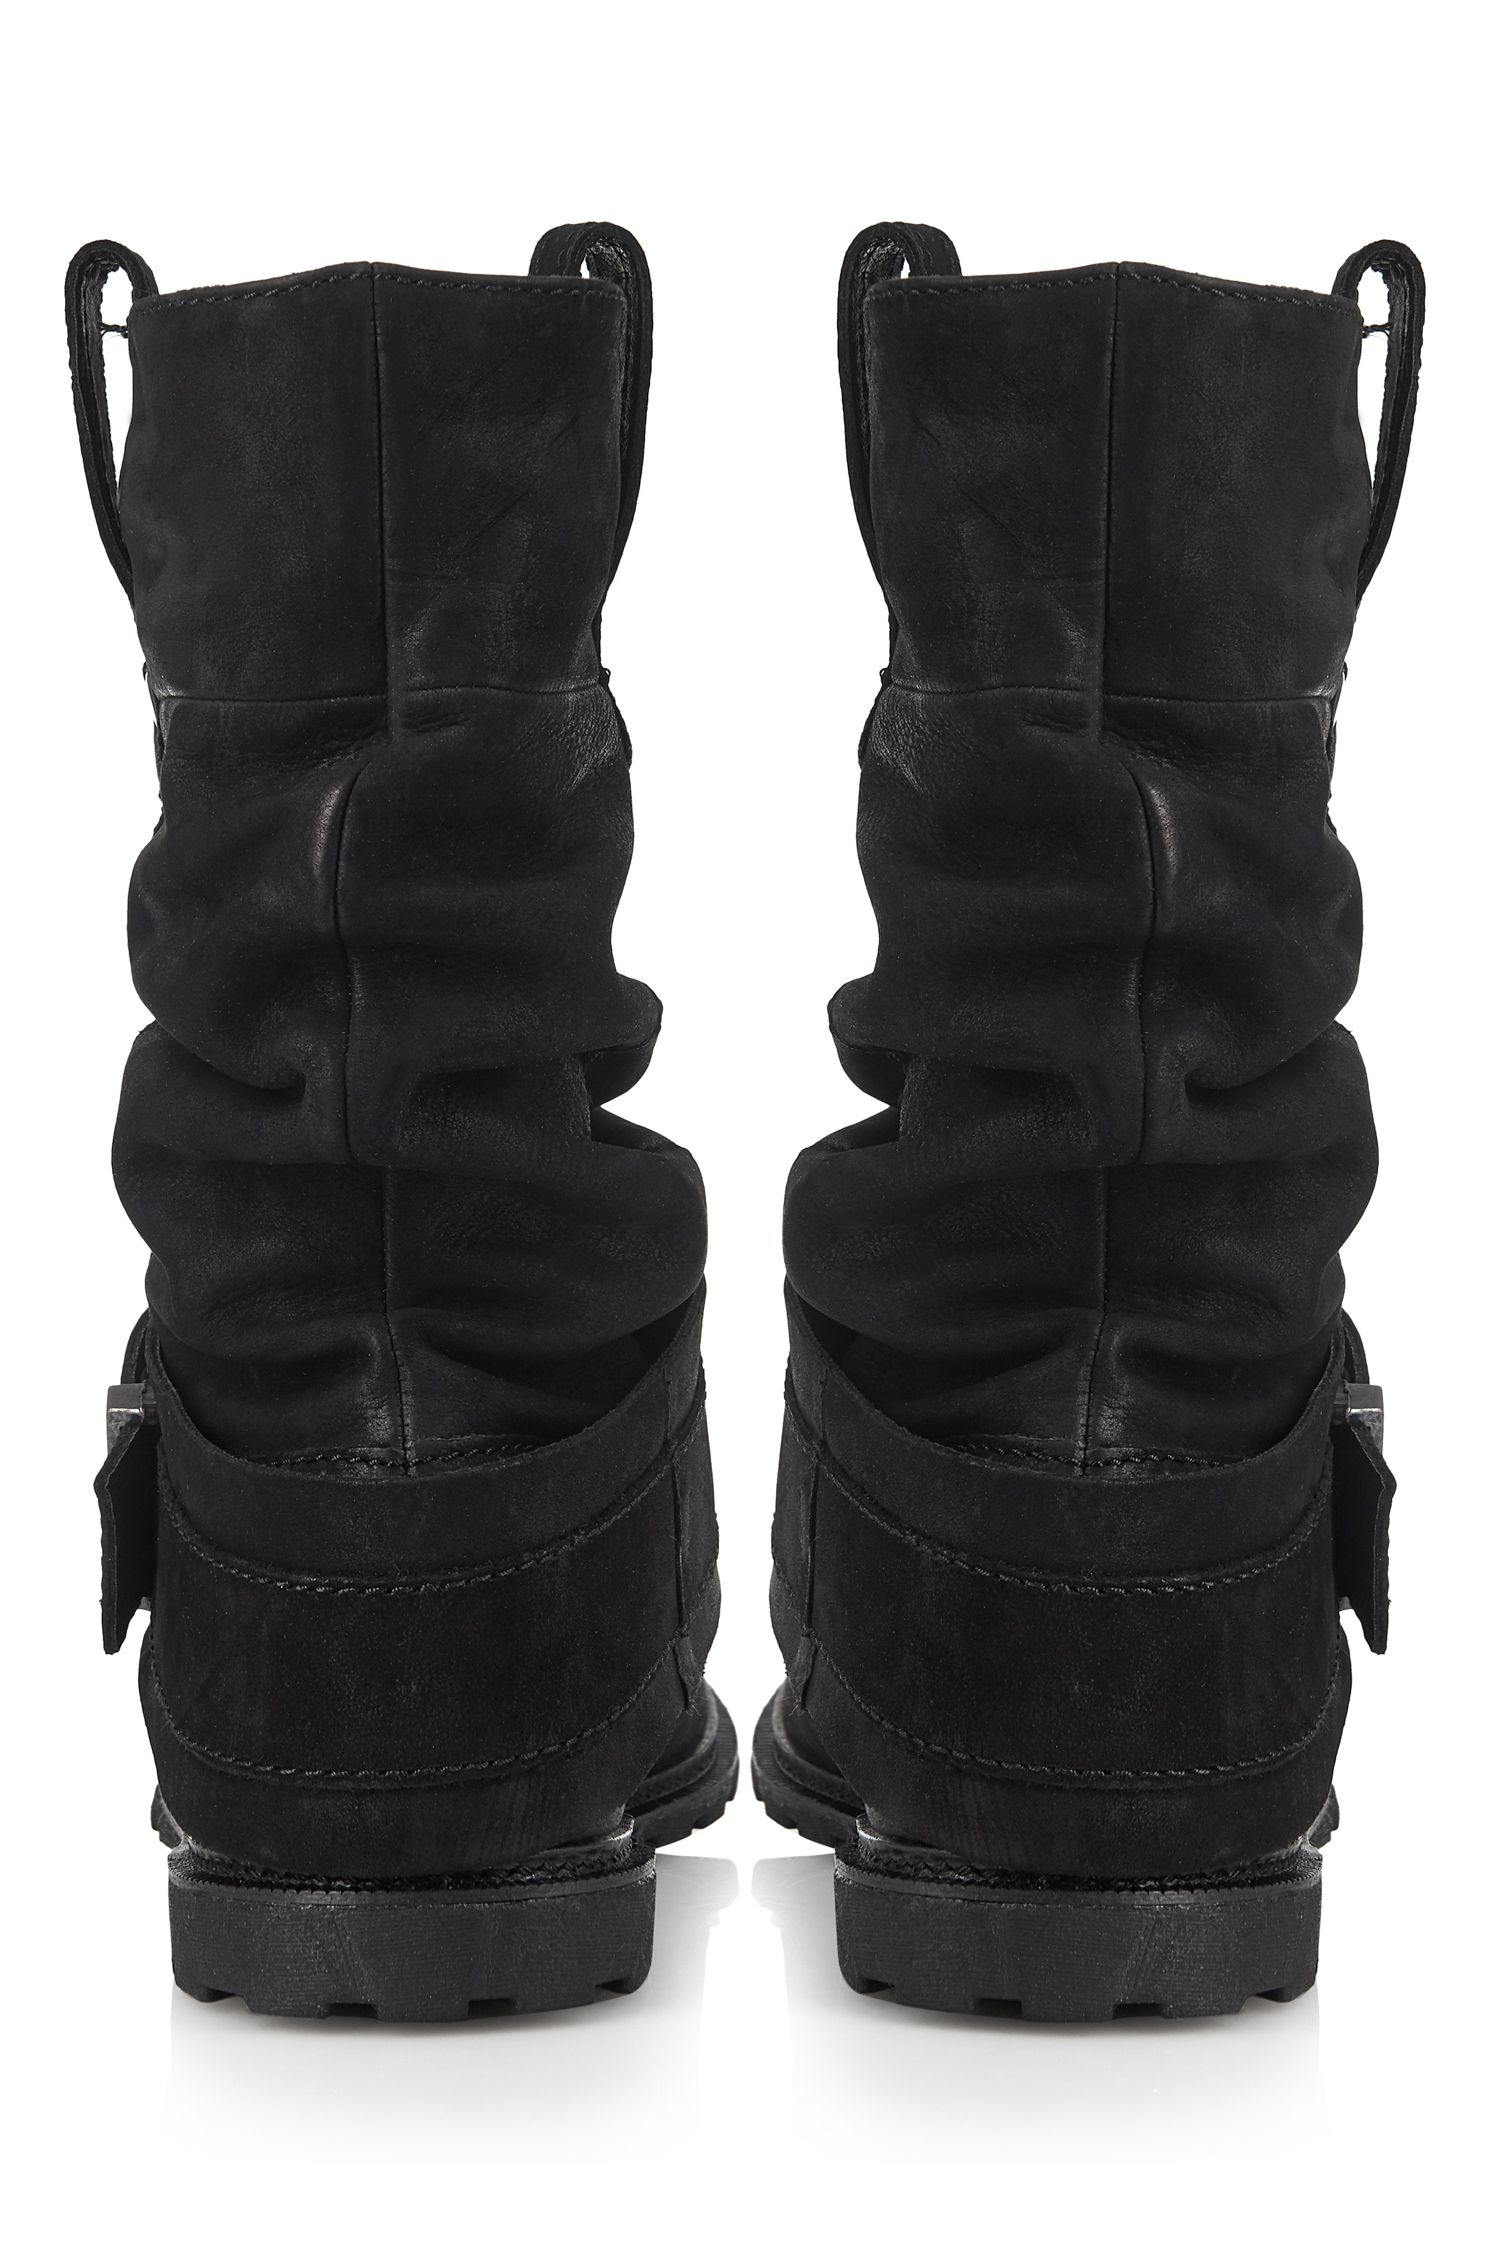 Cara London Leather Slouchy Mid Boot in Black